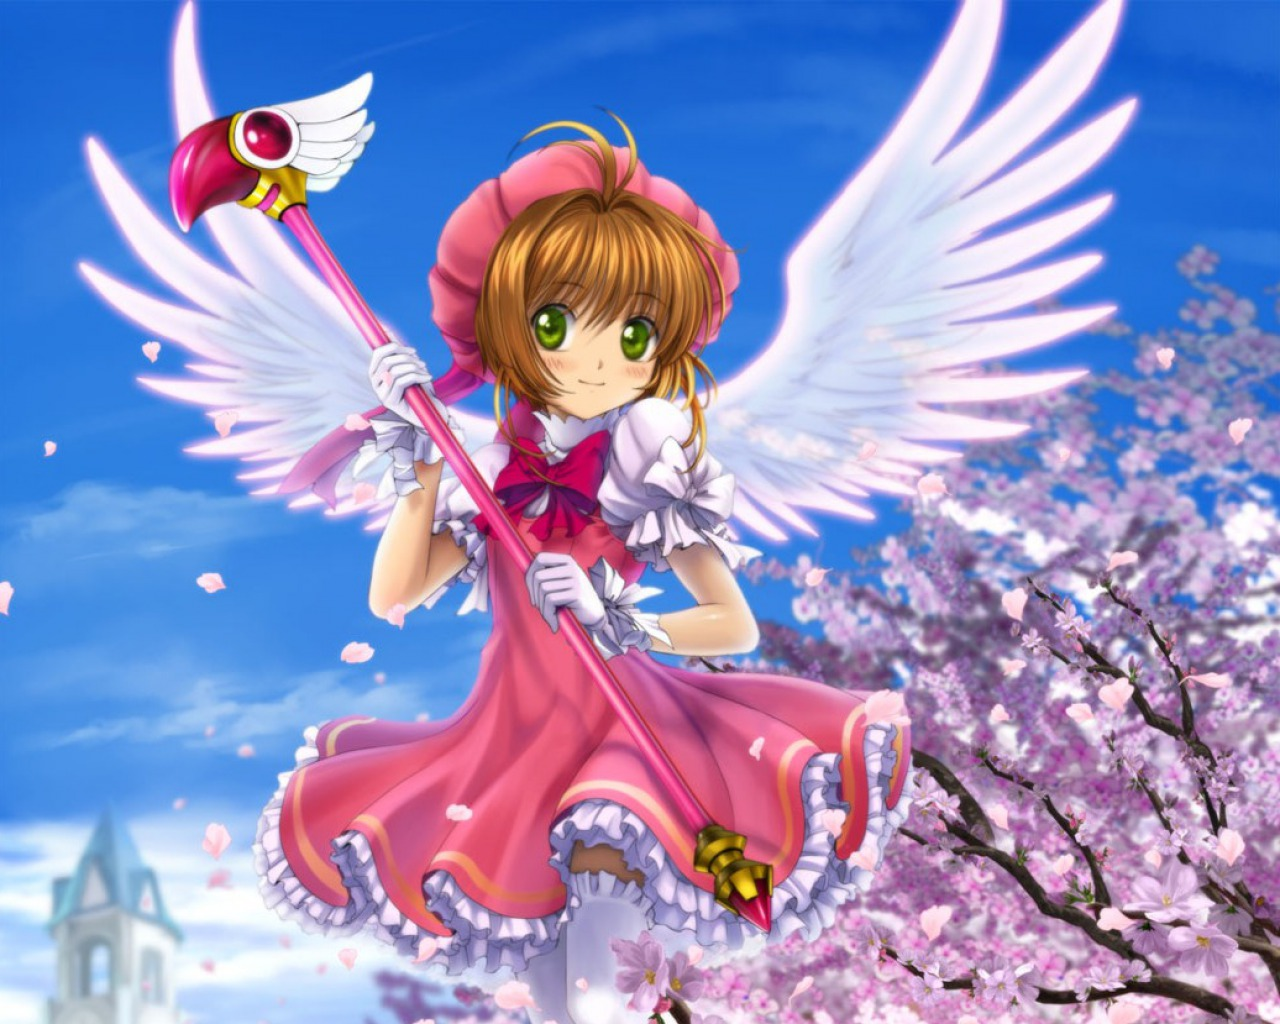 cardcaptor sakura wand how to make